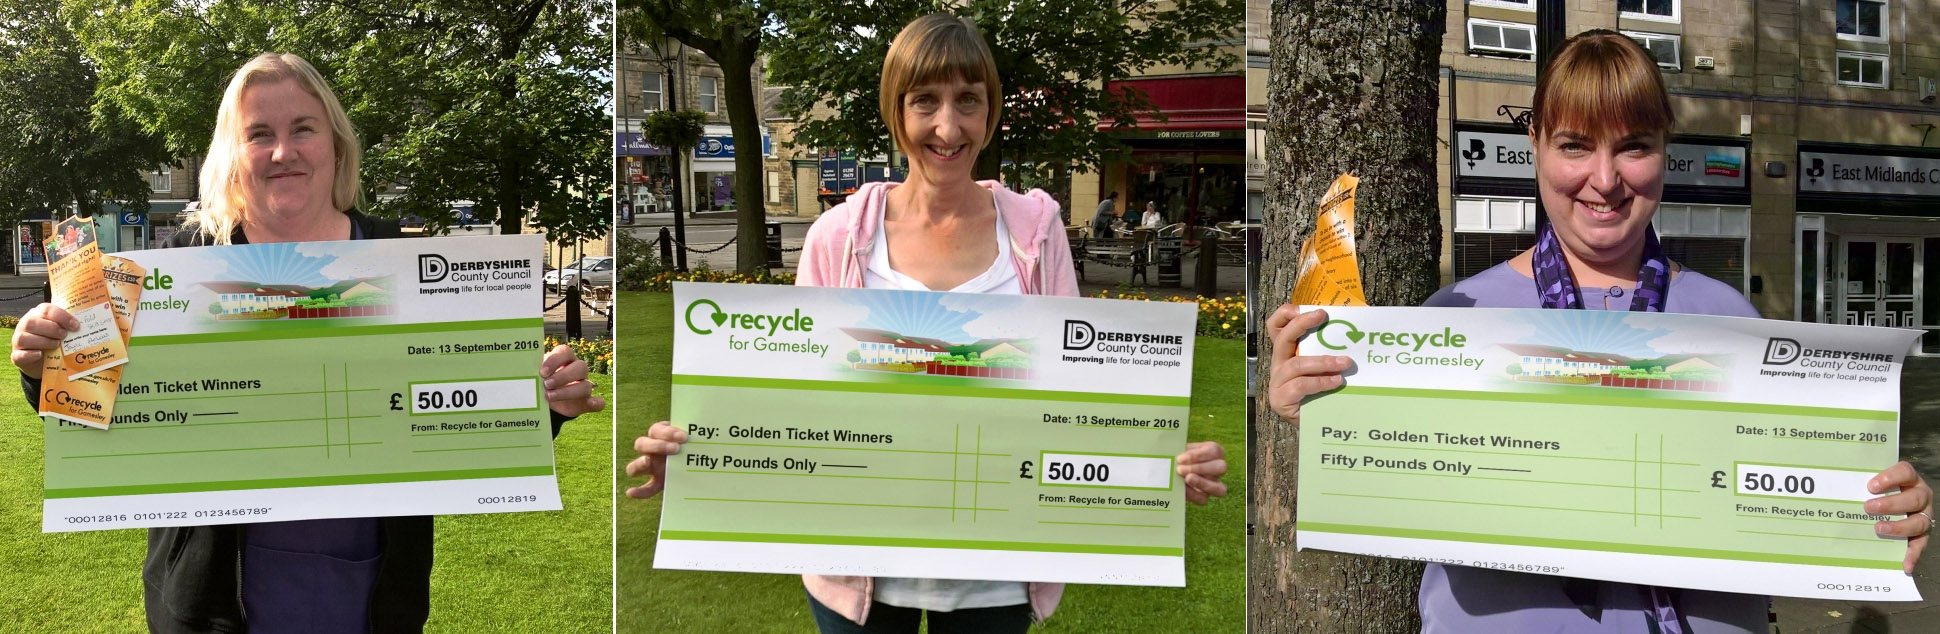 Gamesley's Lucky Recycling Golden Ticket Winners